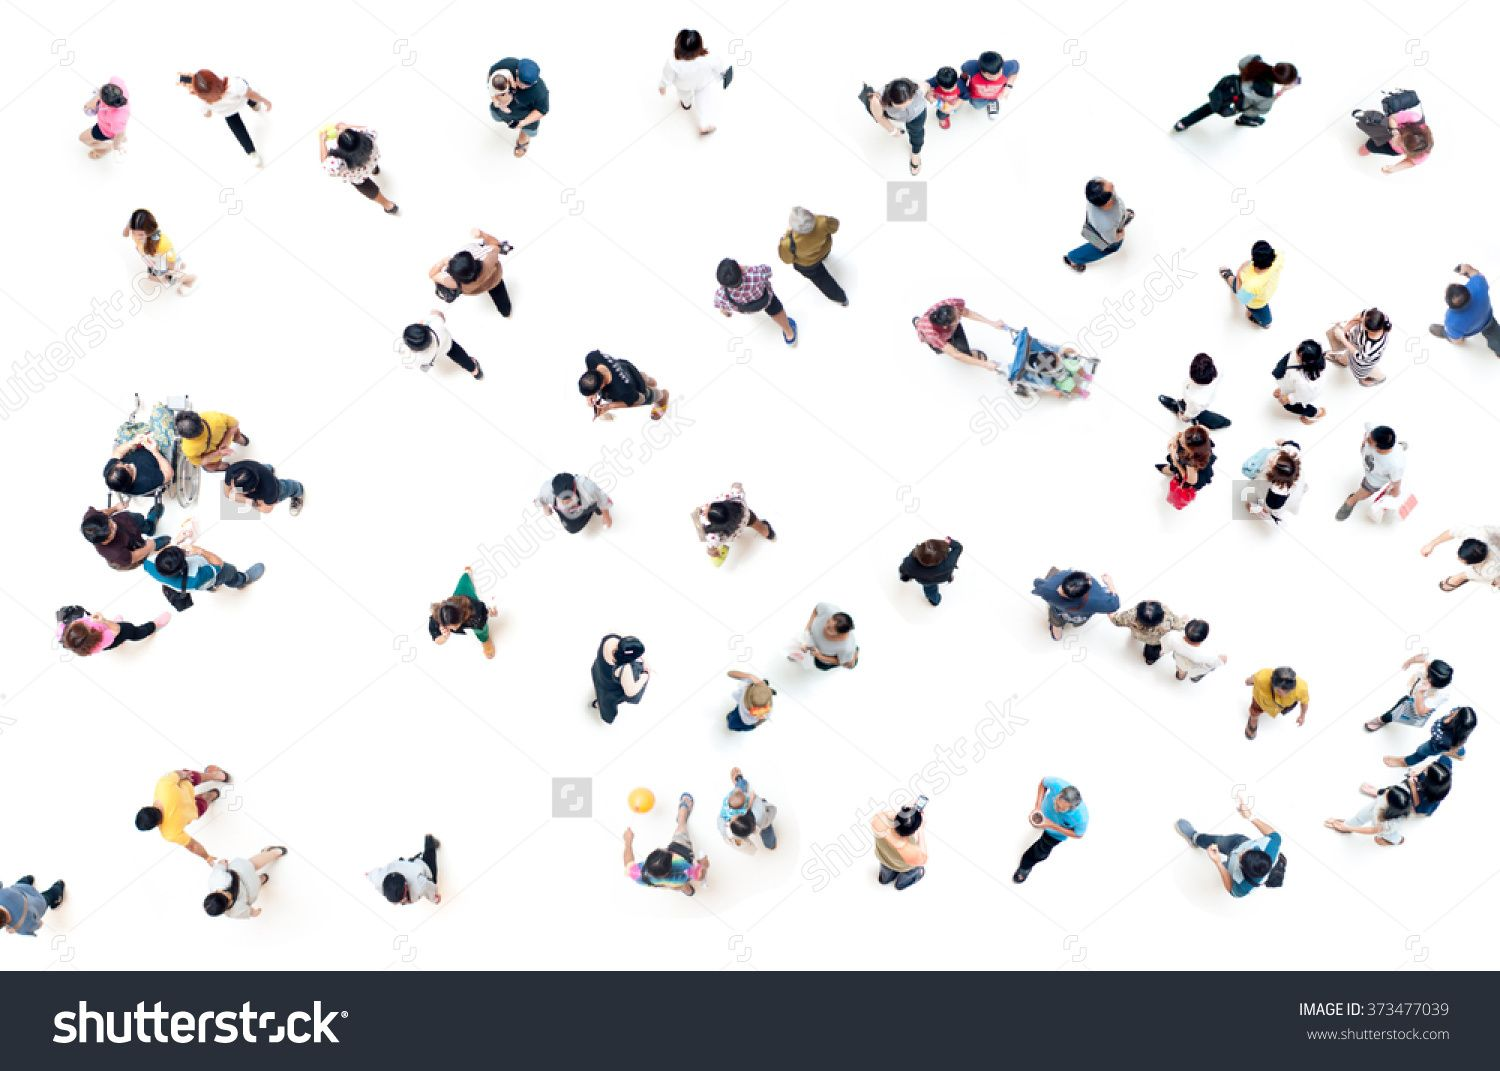 Pin by Carolina Nazianzeno on Photoshop | Pinterest | Photoshop for Crowd Of People Top View Png  557ylc